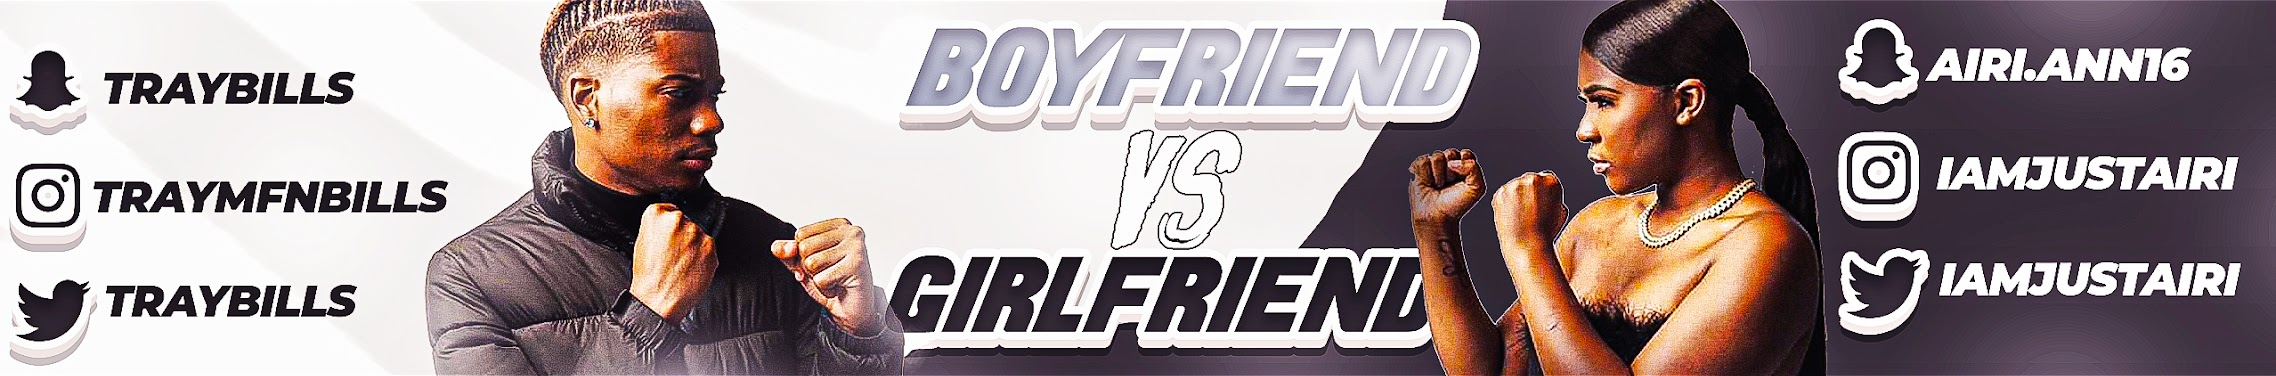 Youtube boyfriend vs girlfriend